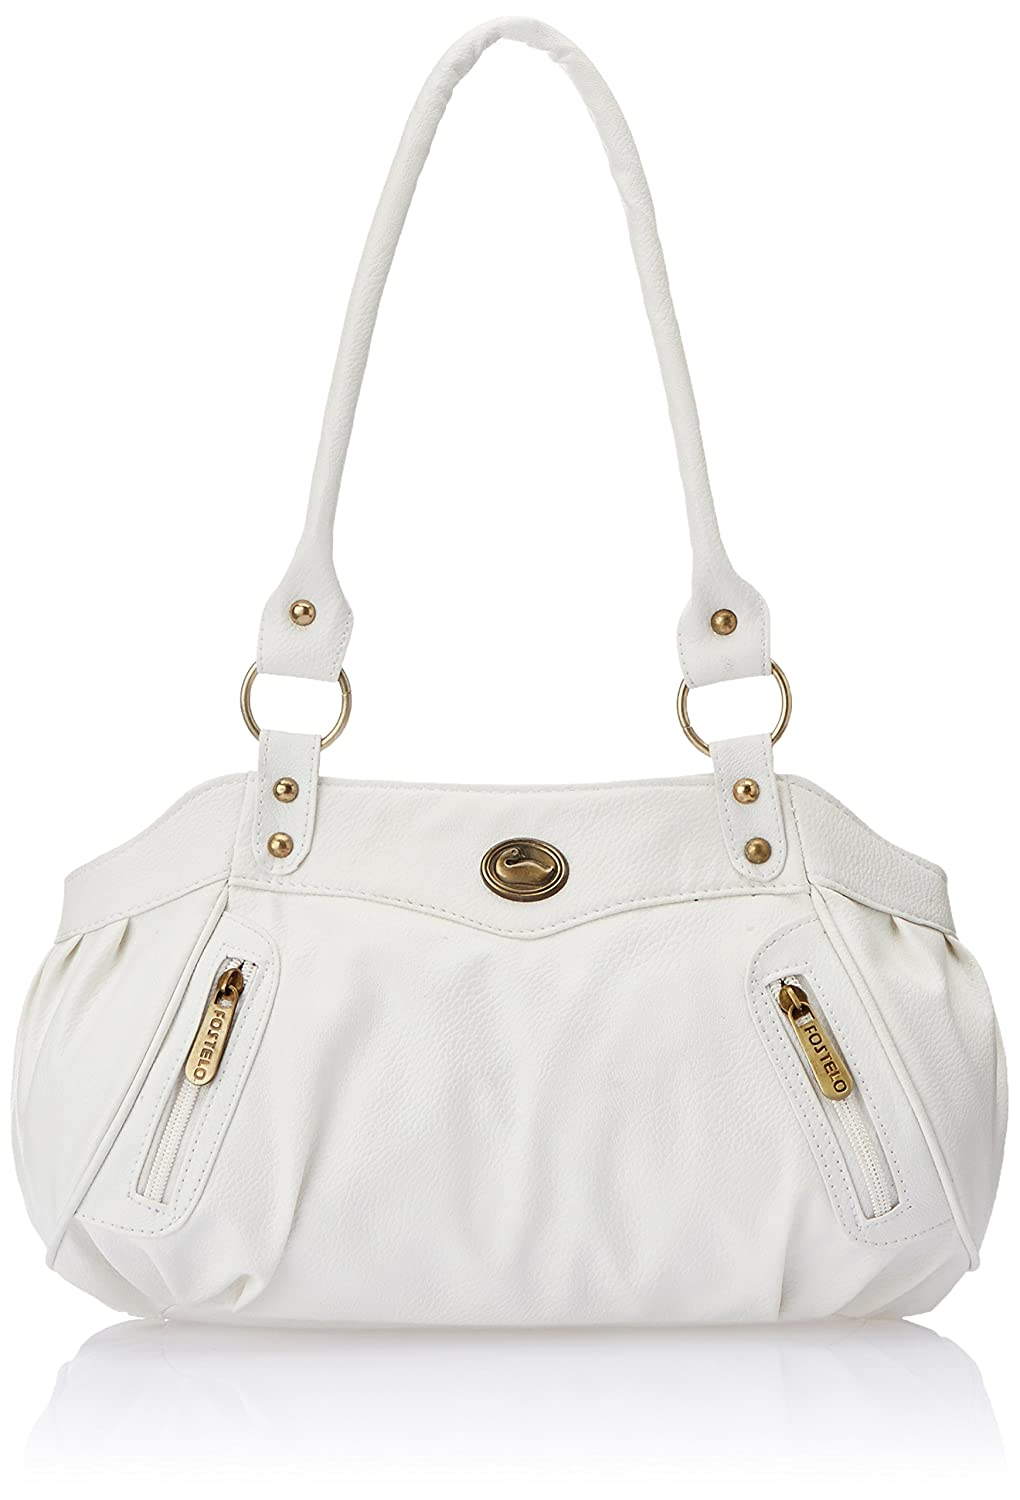 Fostelo Women's Handbag (White) (FSB-145): Amazon.in: Shoes & Handbags